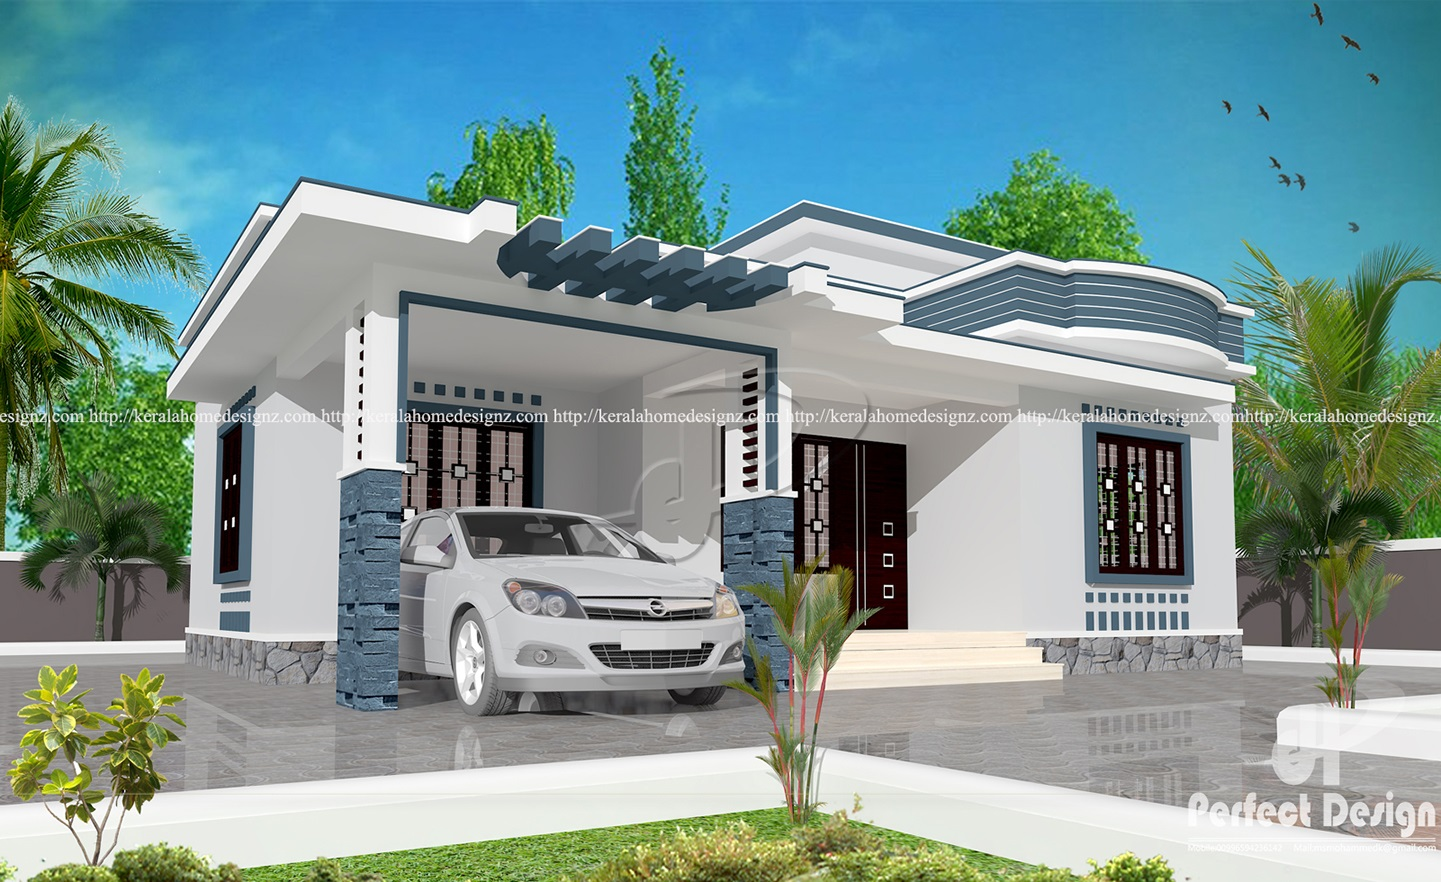 10 lakhs cost estimated modern home kerala home design for Home floor plans with estimated cost to build